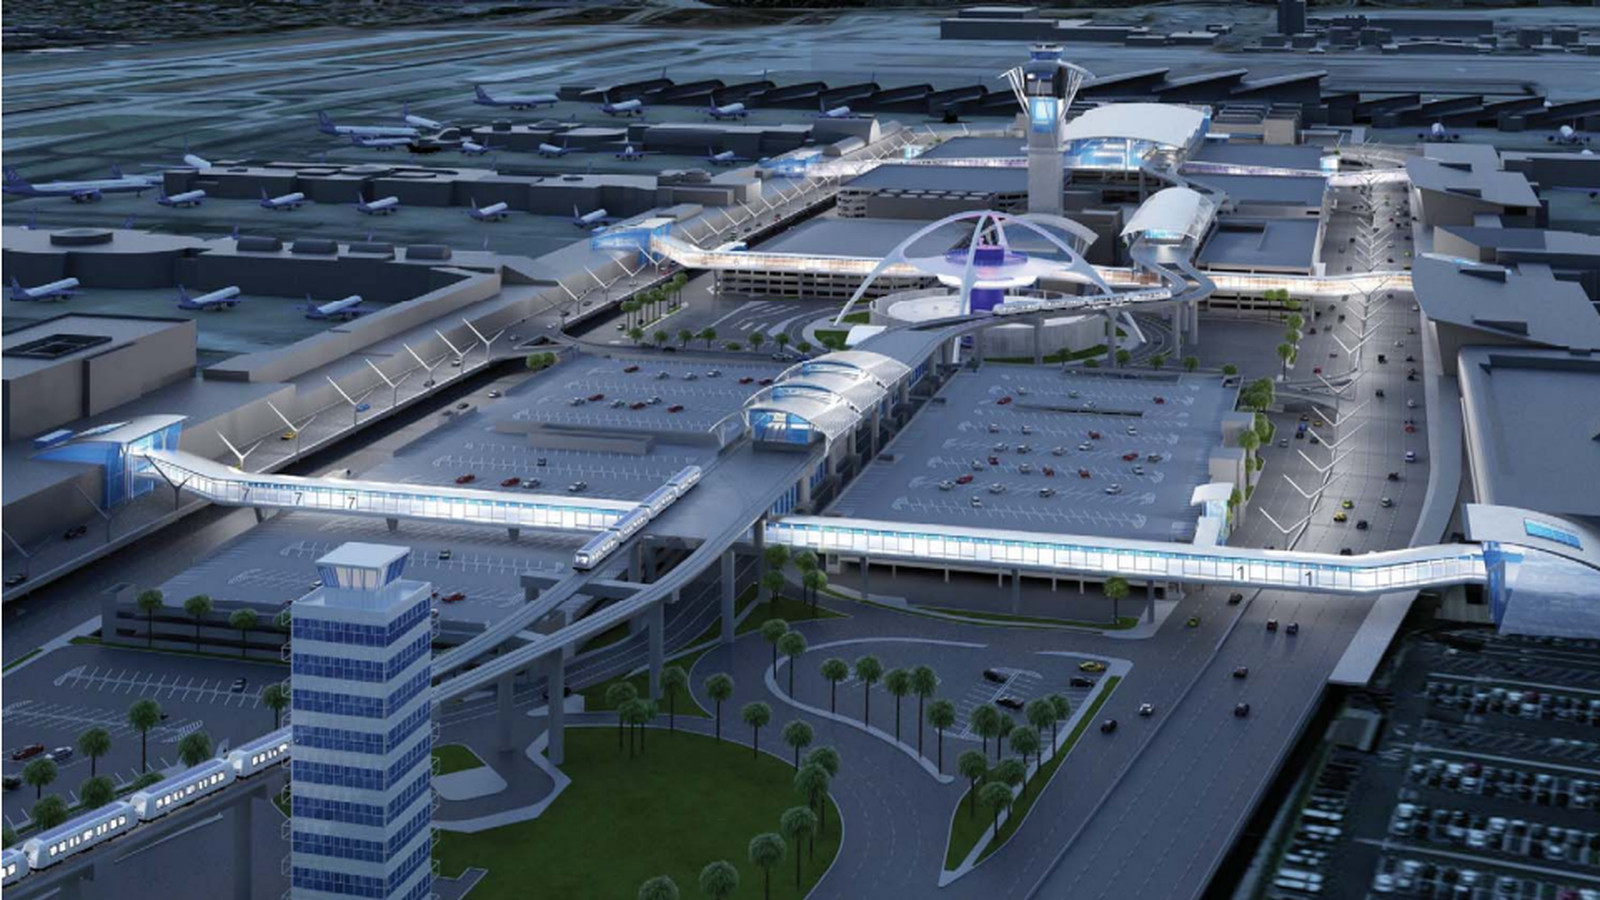 New Look At The Lax People Mover Set To Be Finished In